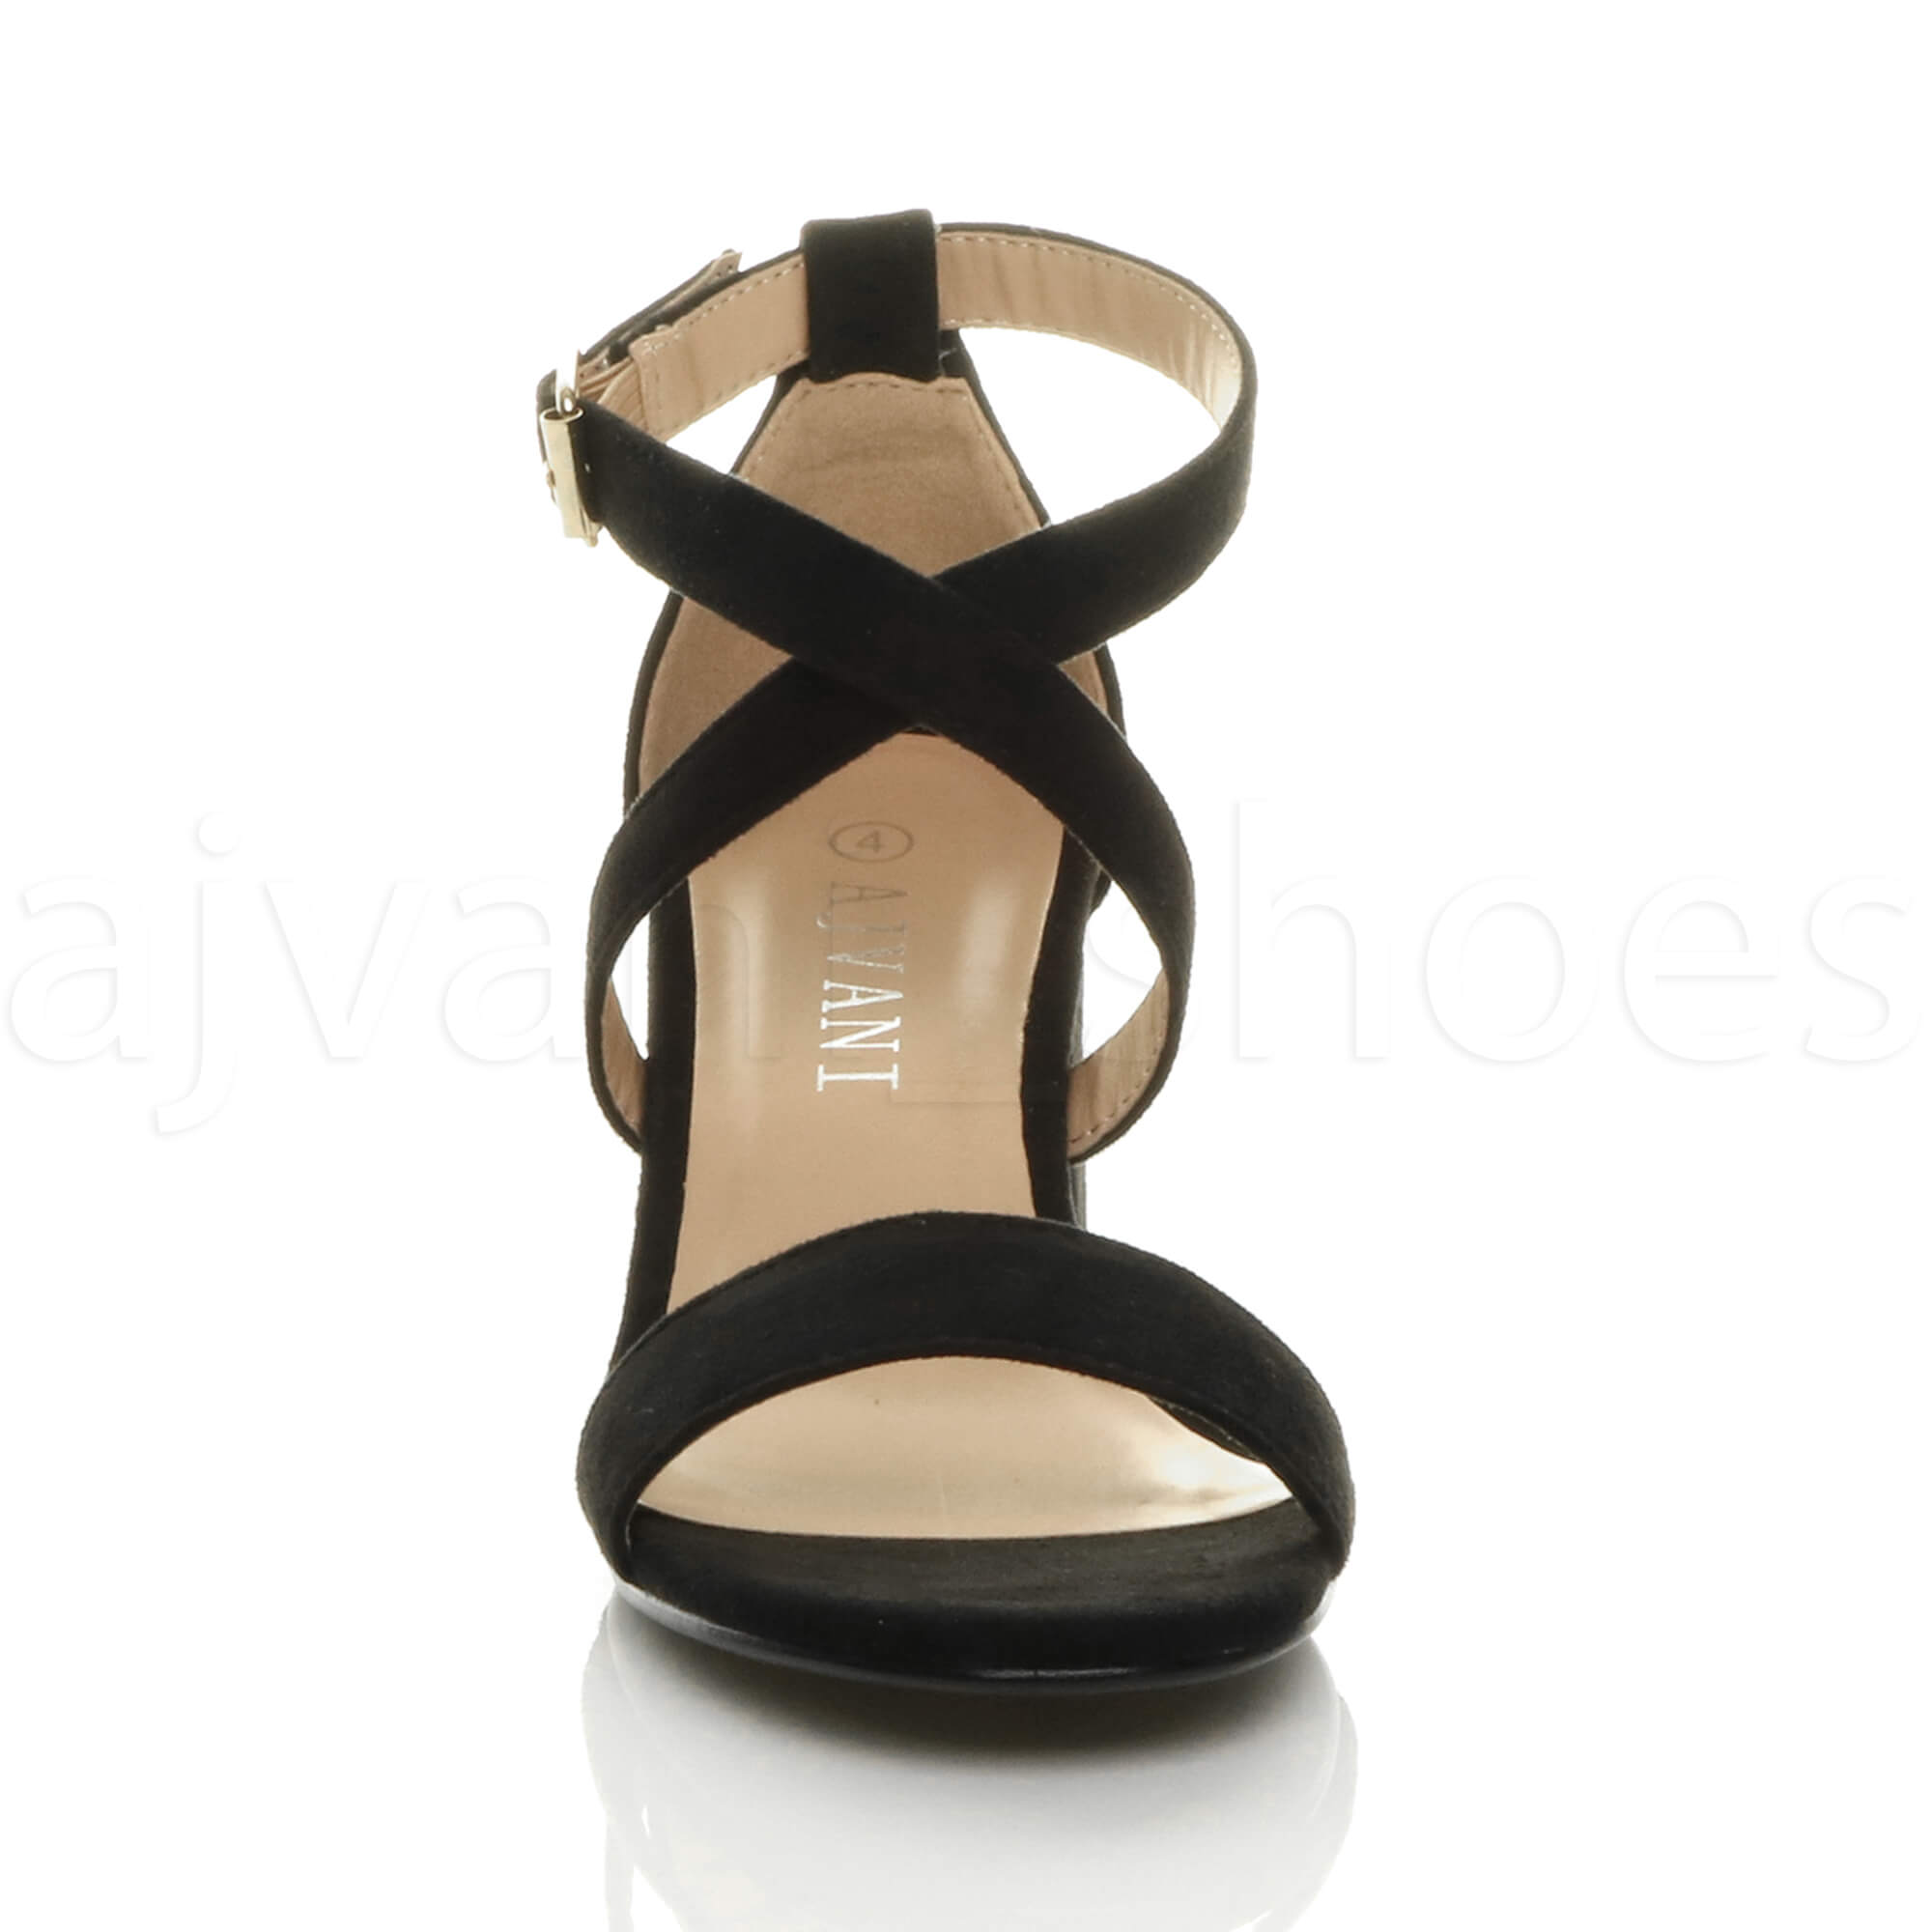 WOMENS-LADIES-MID-LOW-BLOCK-HEEL-CROSS-STRAPS-PARTY-STRAPPY-SANDALS-SHOES-SIZE thumbnail 9